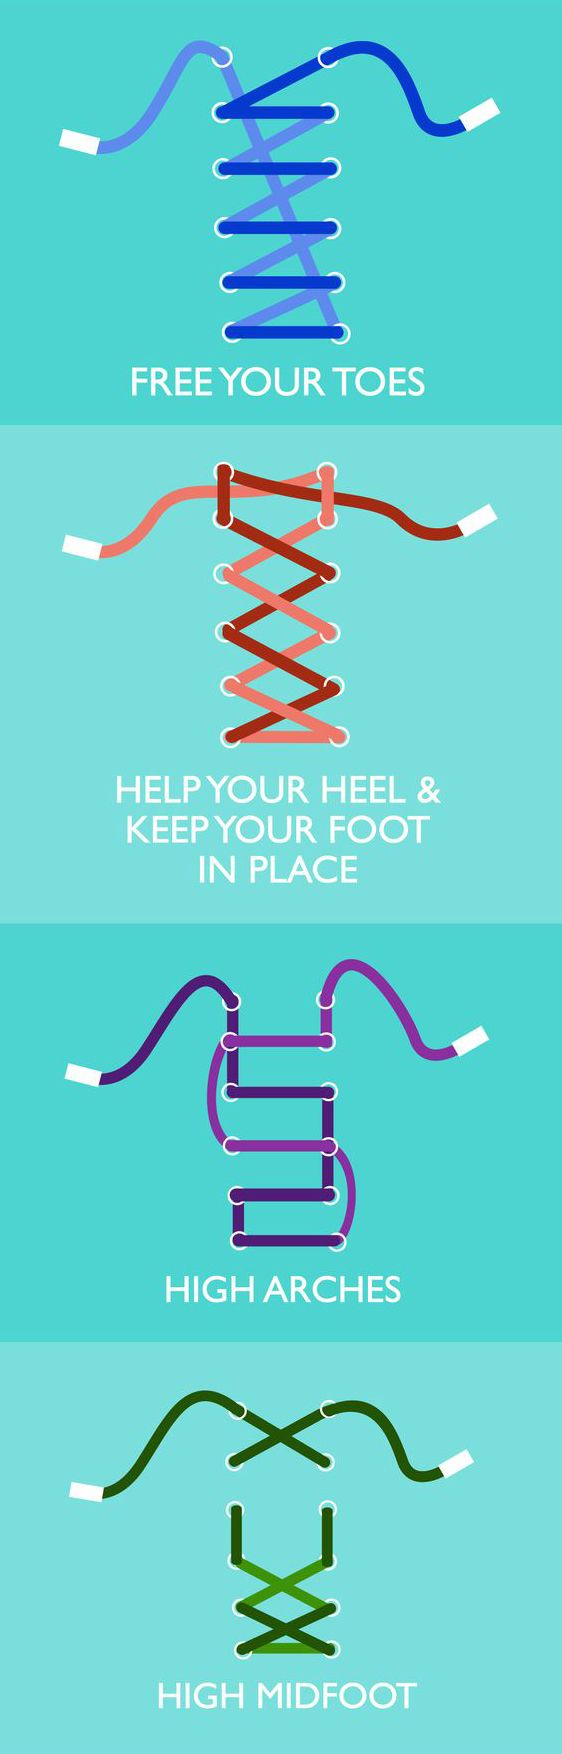 """how to lace up running shoes comfort""""></figure></p> </body></html>"""